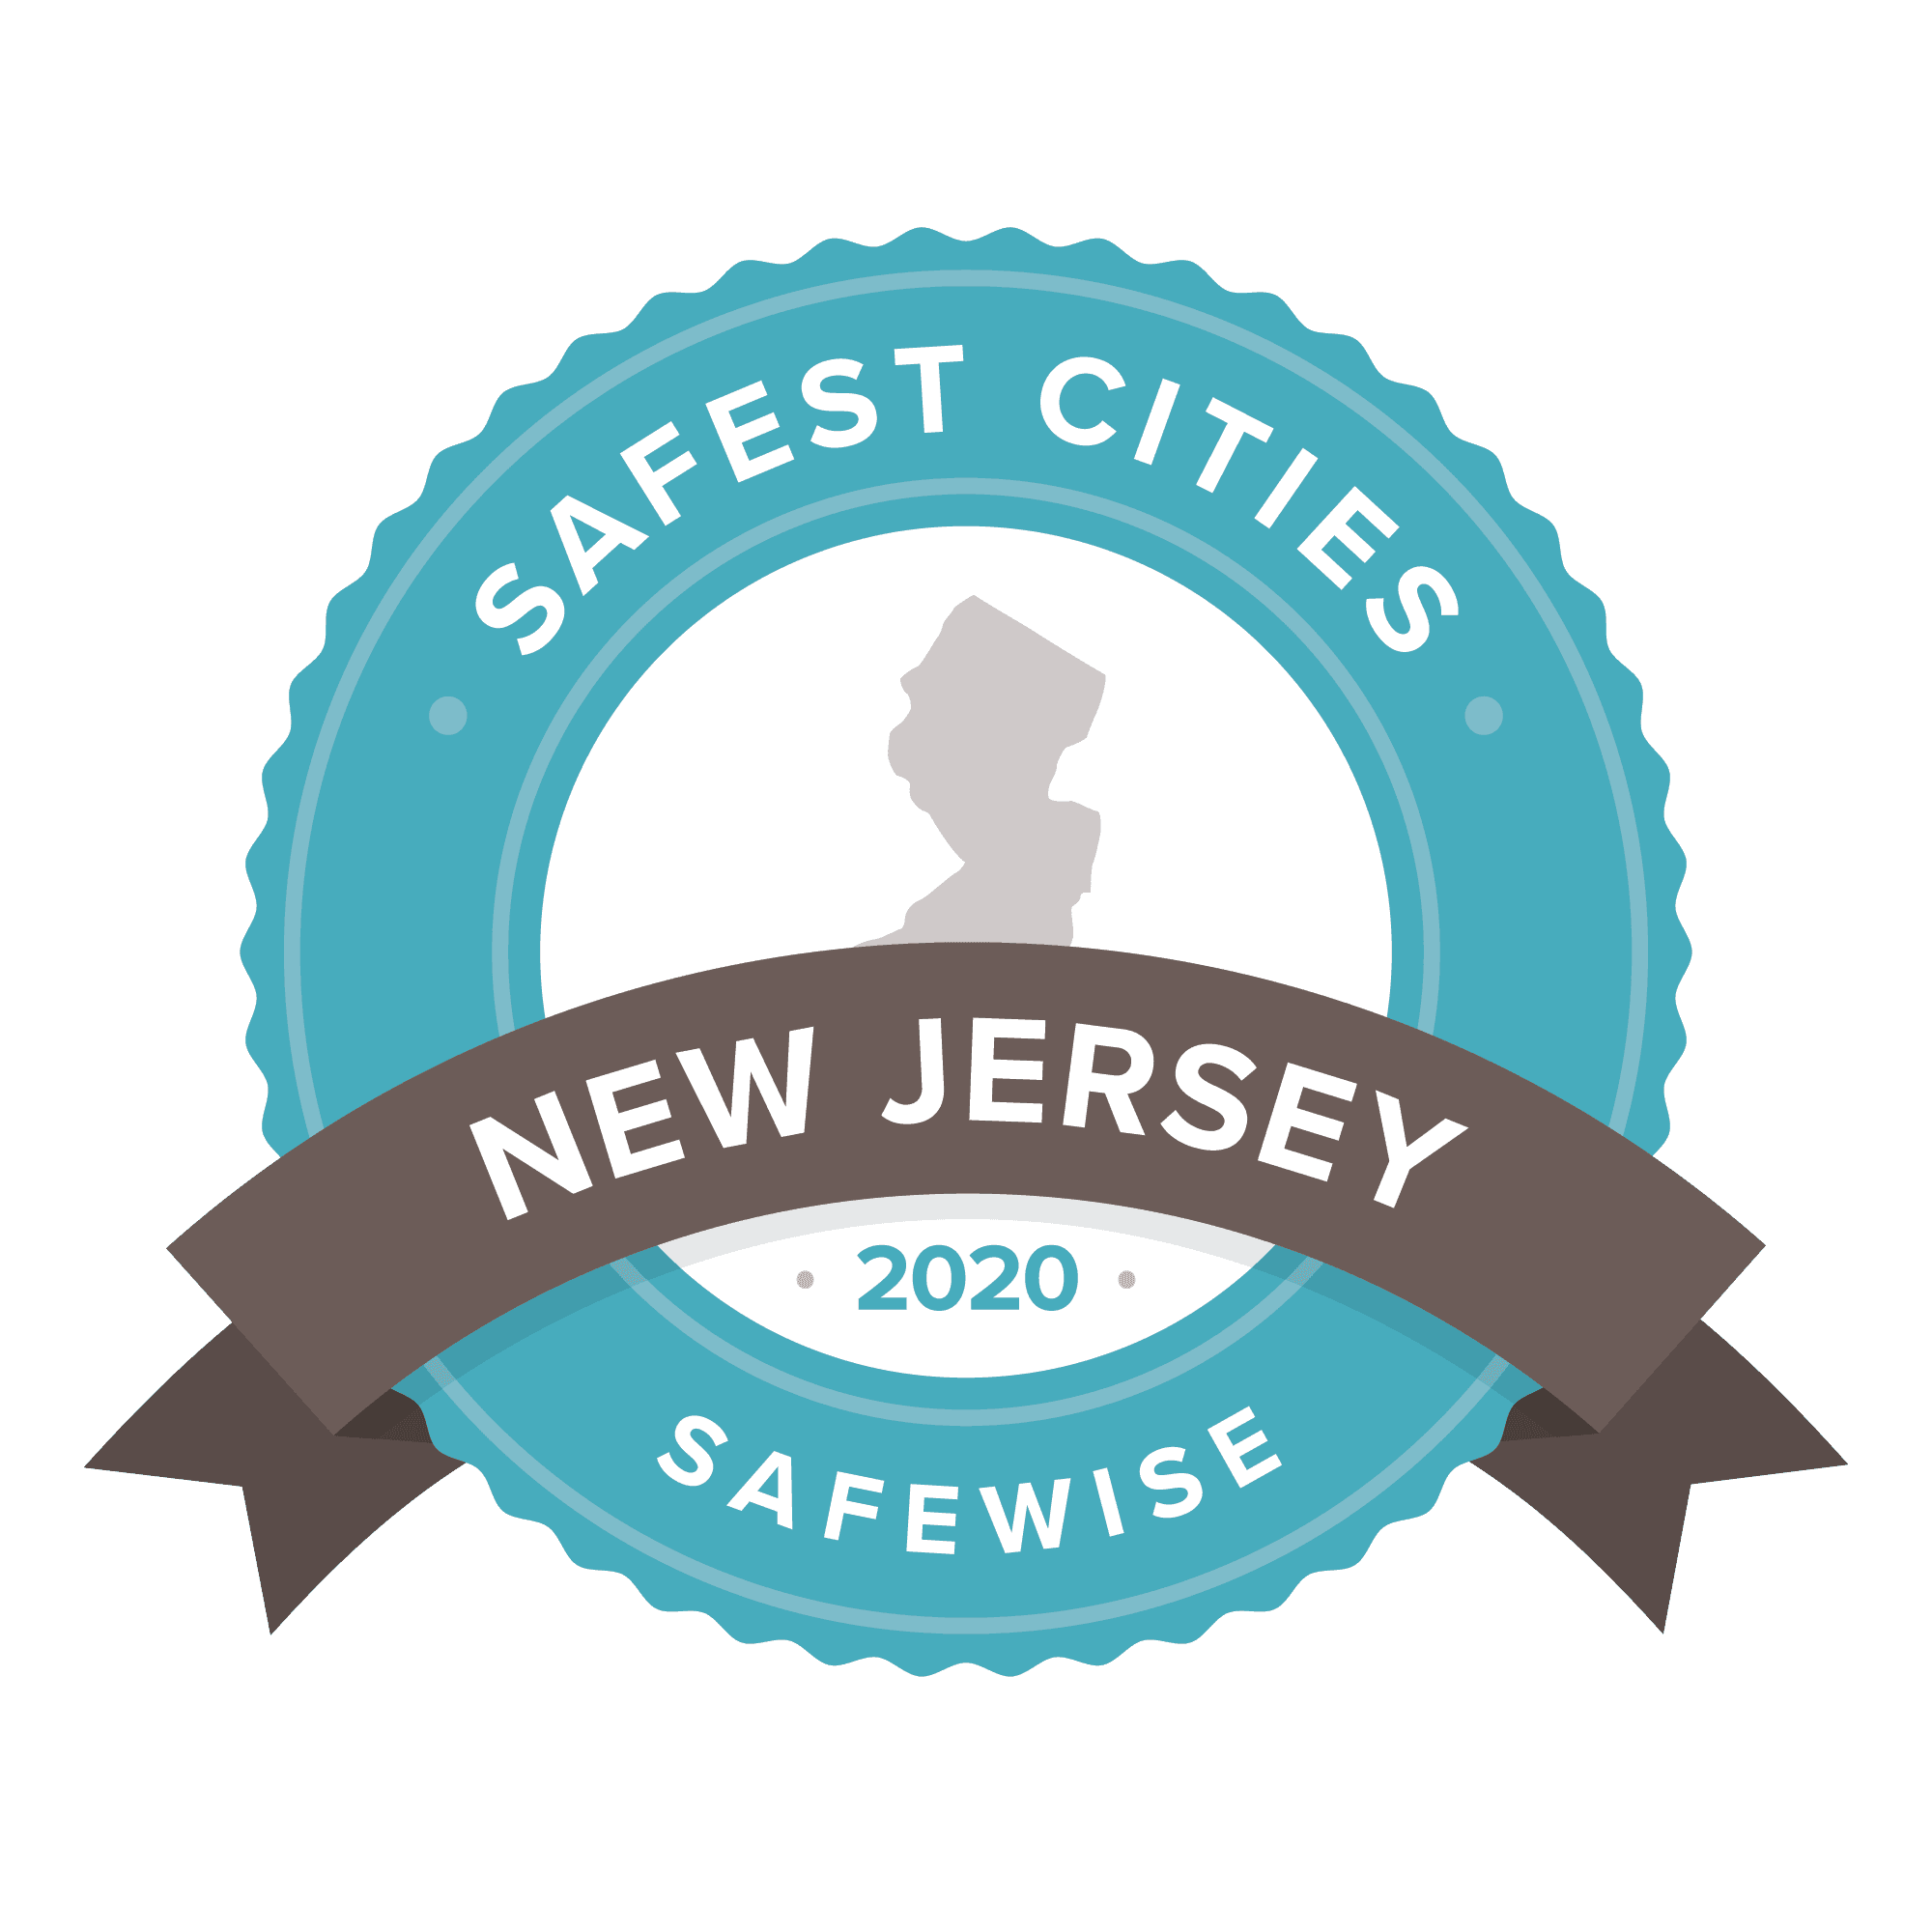 NewJersey-badge-SafeWise